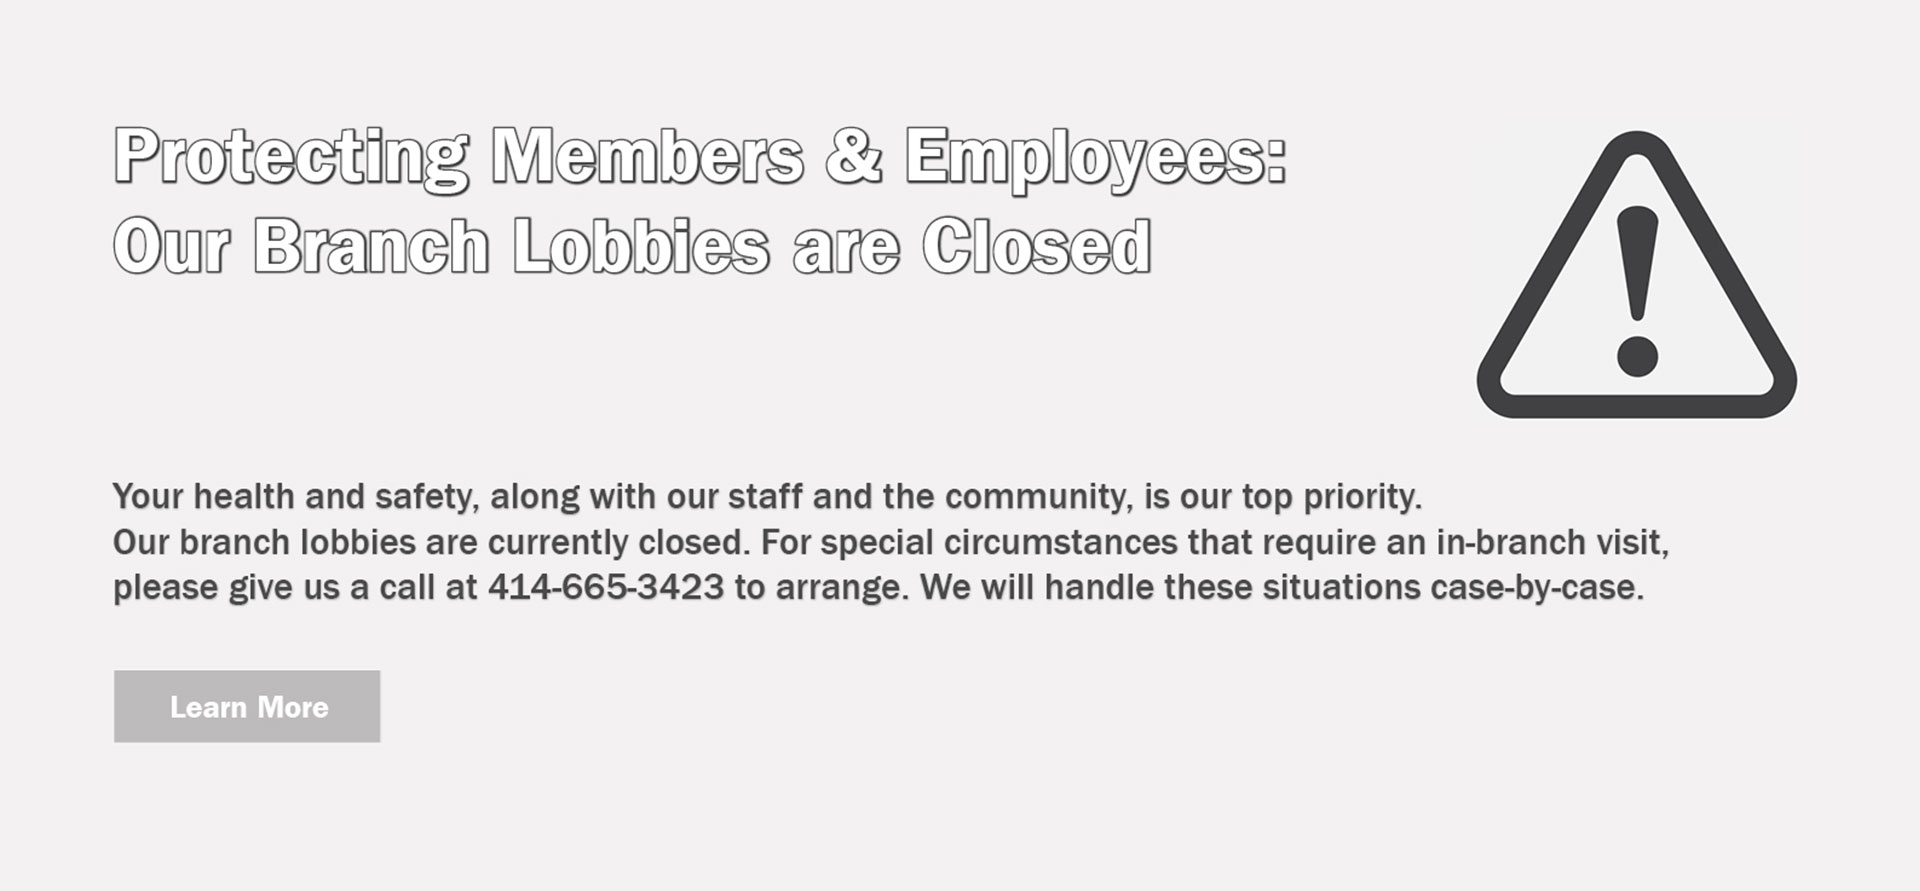 Our Lobbies are closed please call 414-665-3423 to arrange appointment